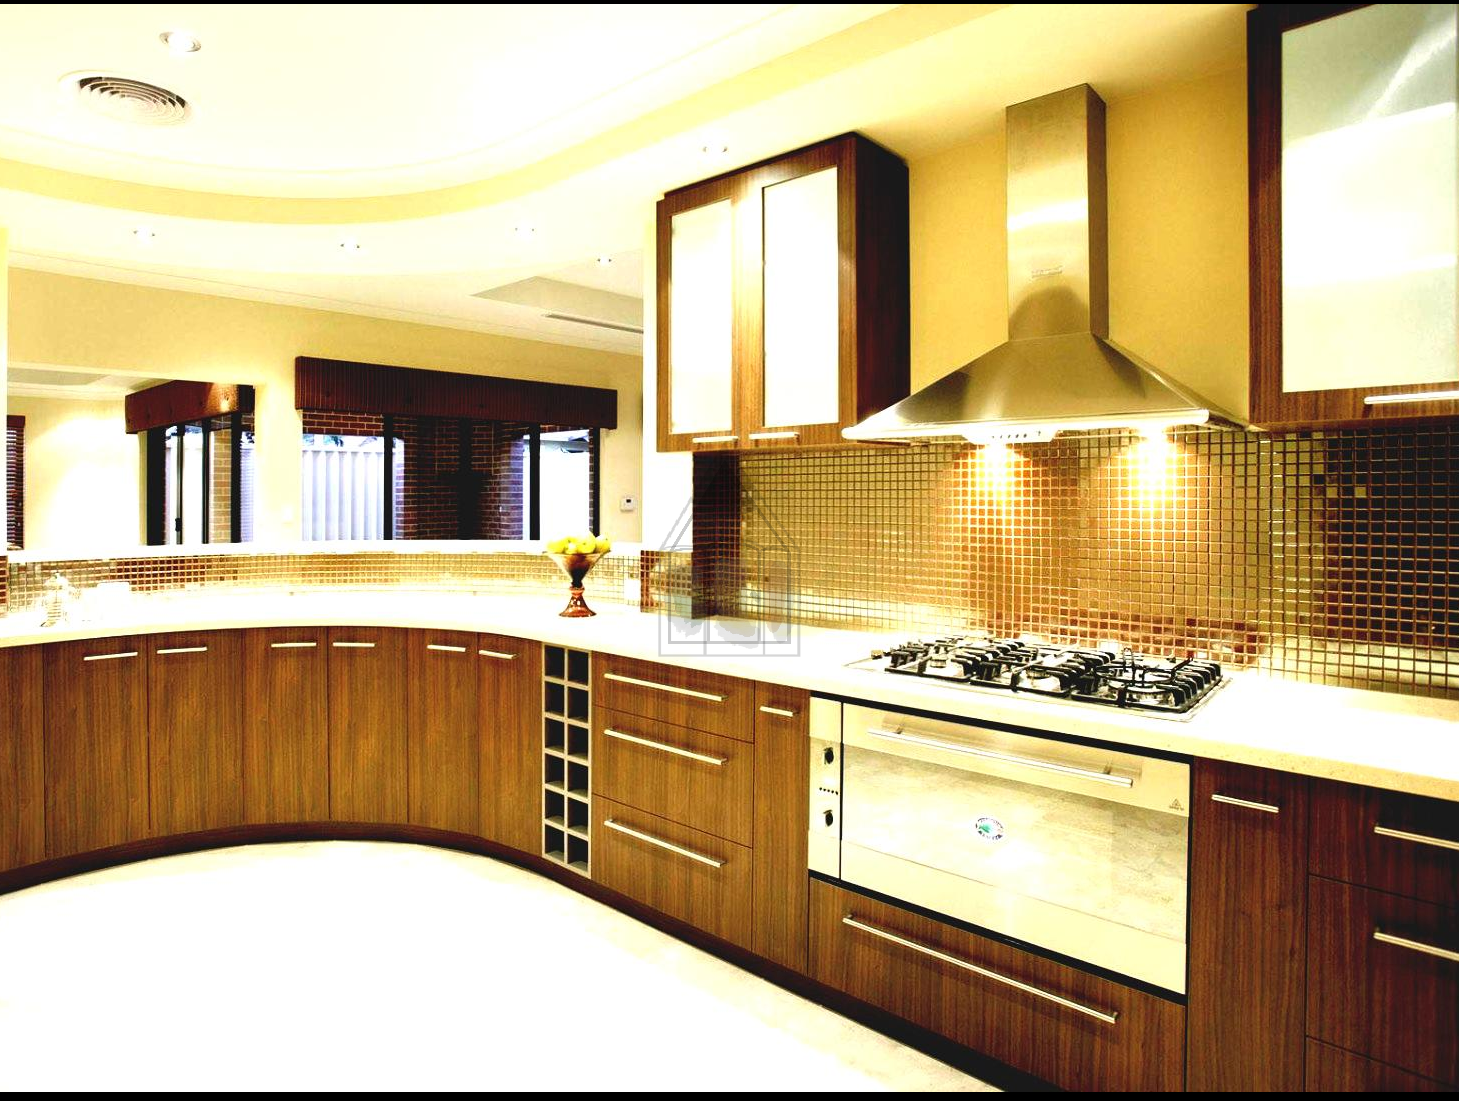 Kitchenette Design Karachi, Pakistan | Kitchen Design | Pinterest